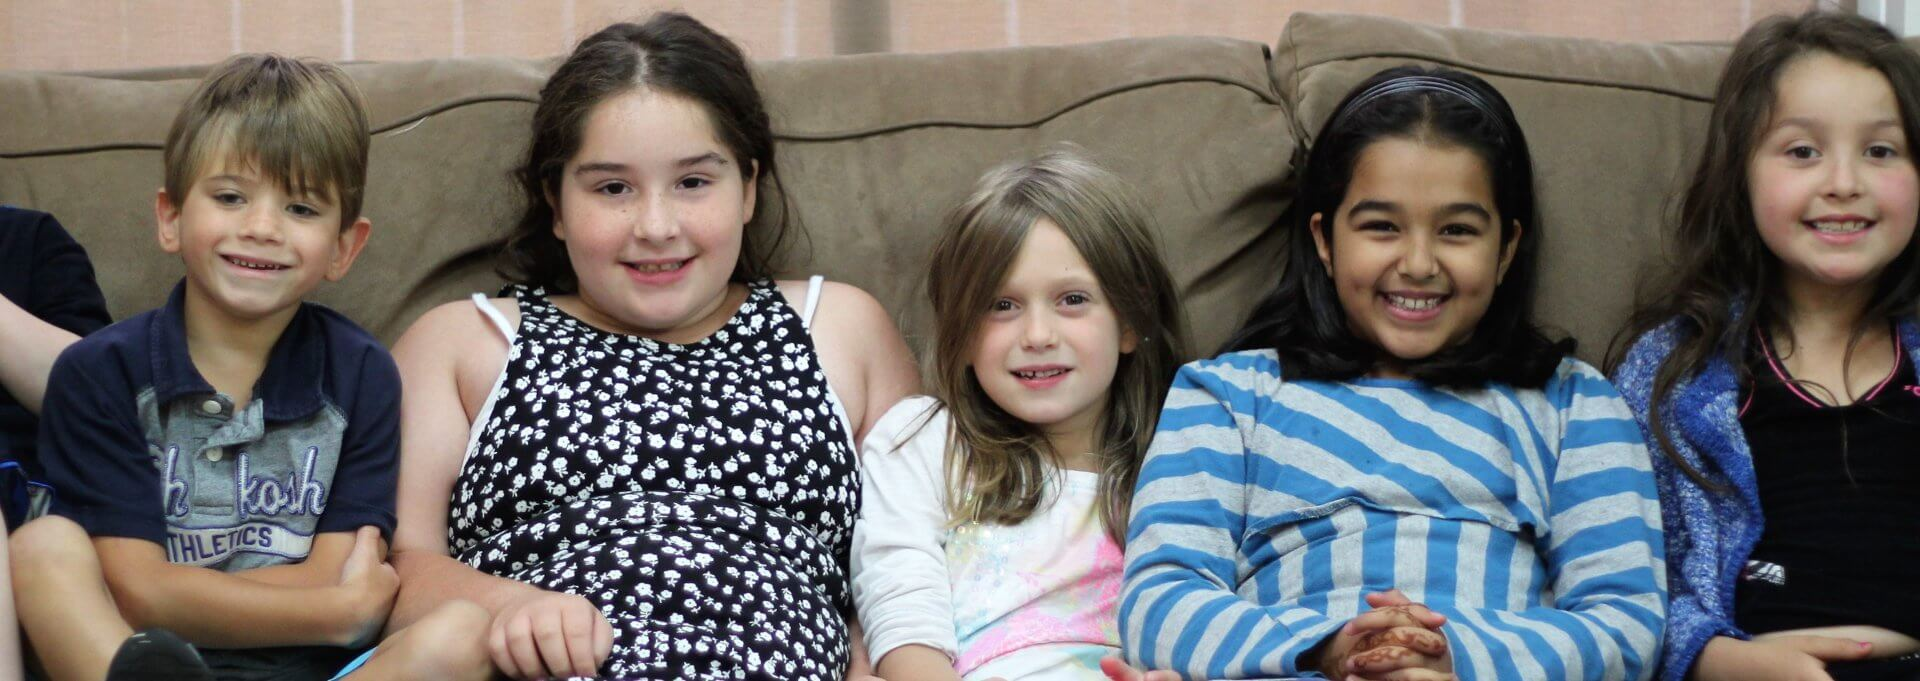 Children smiling on couch